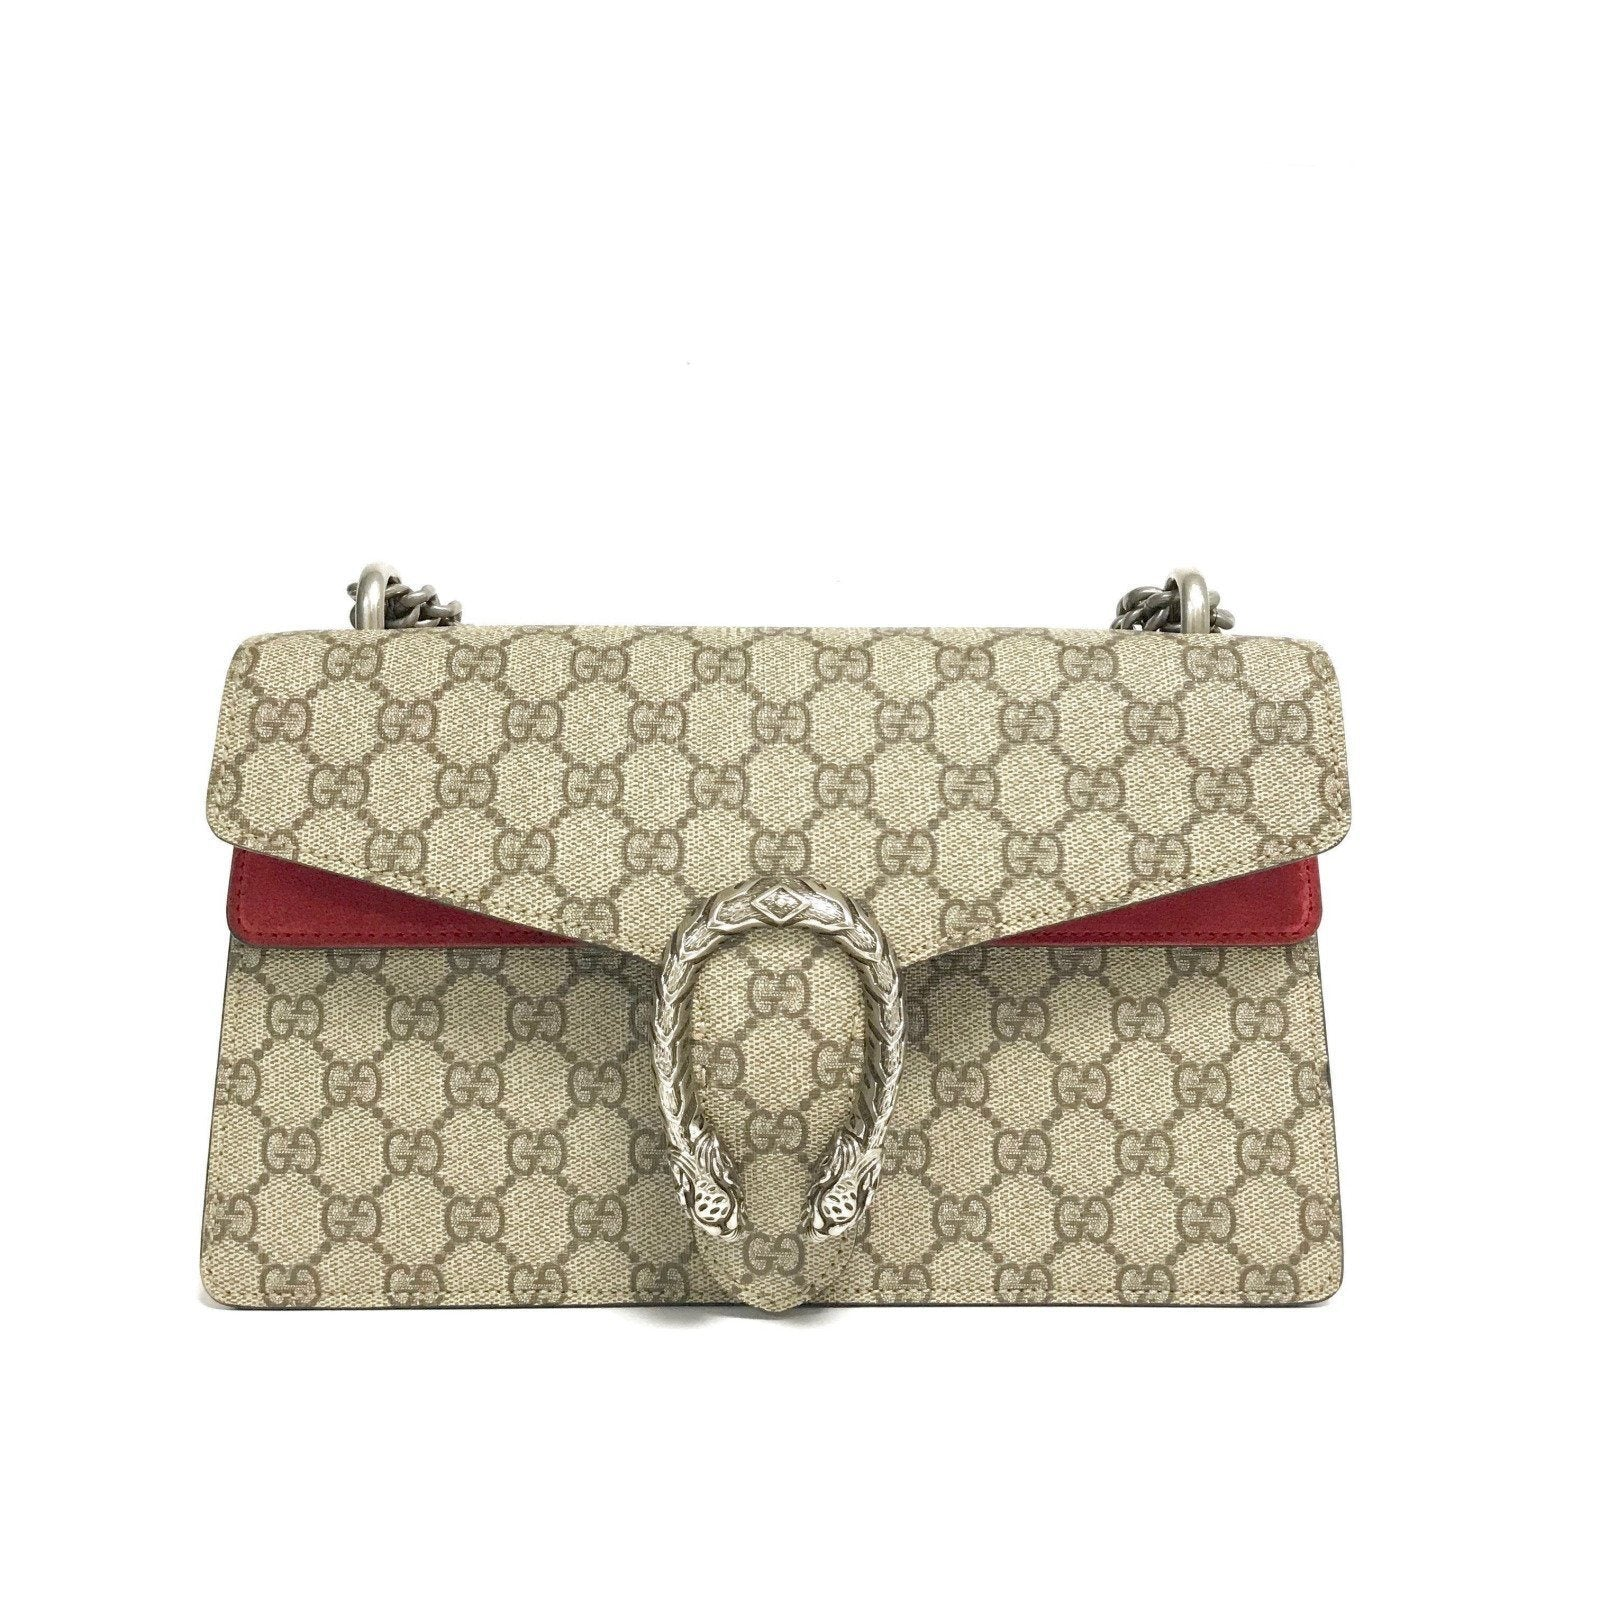 56a662c49205 Gucci Dionysus Small GG Shoulder Bag– Oliver Jewellery